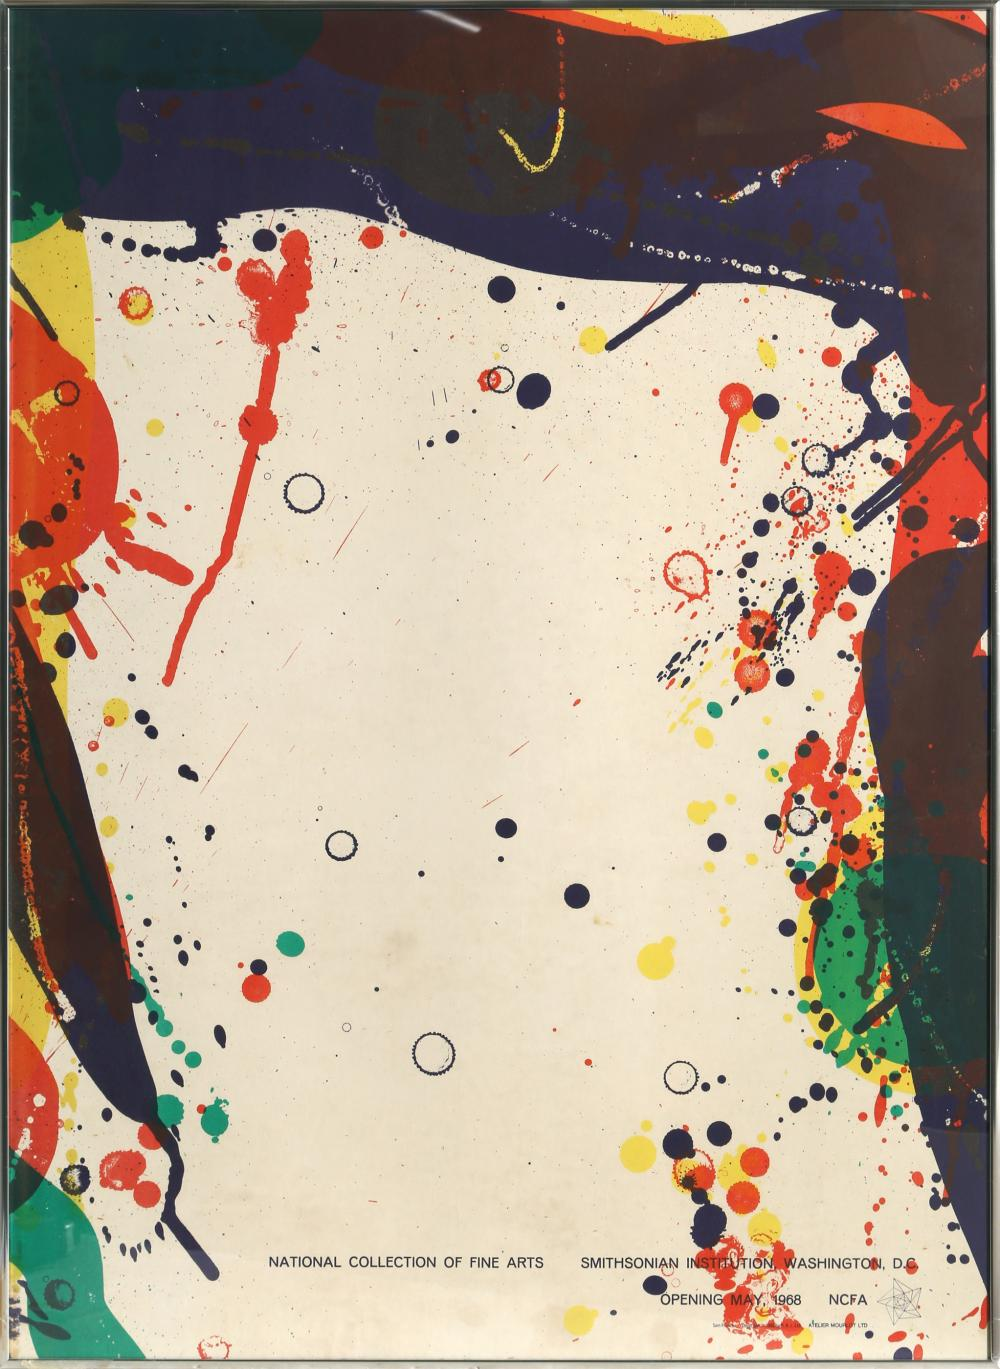 SAM FRANCIS, SMITHSONIAN POSTER, OFFSET LITHOGRAPH